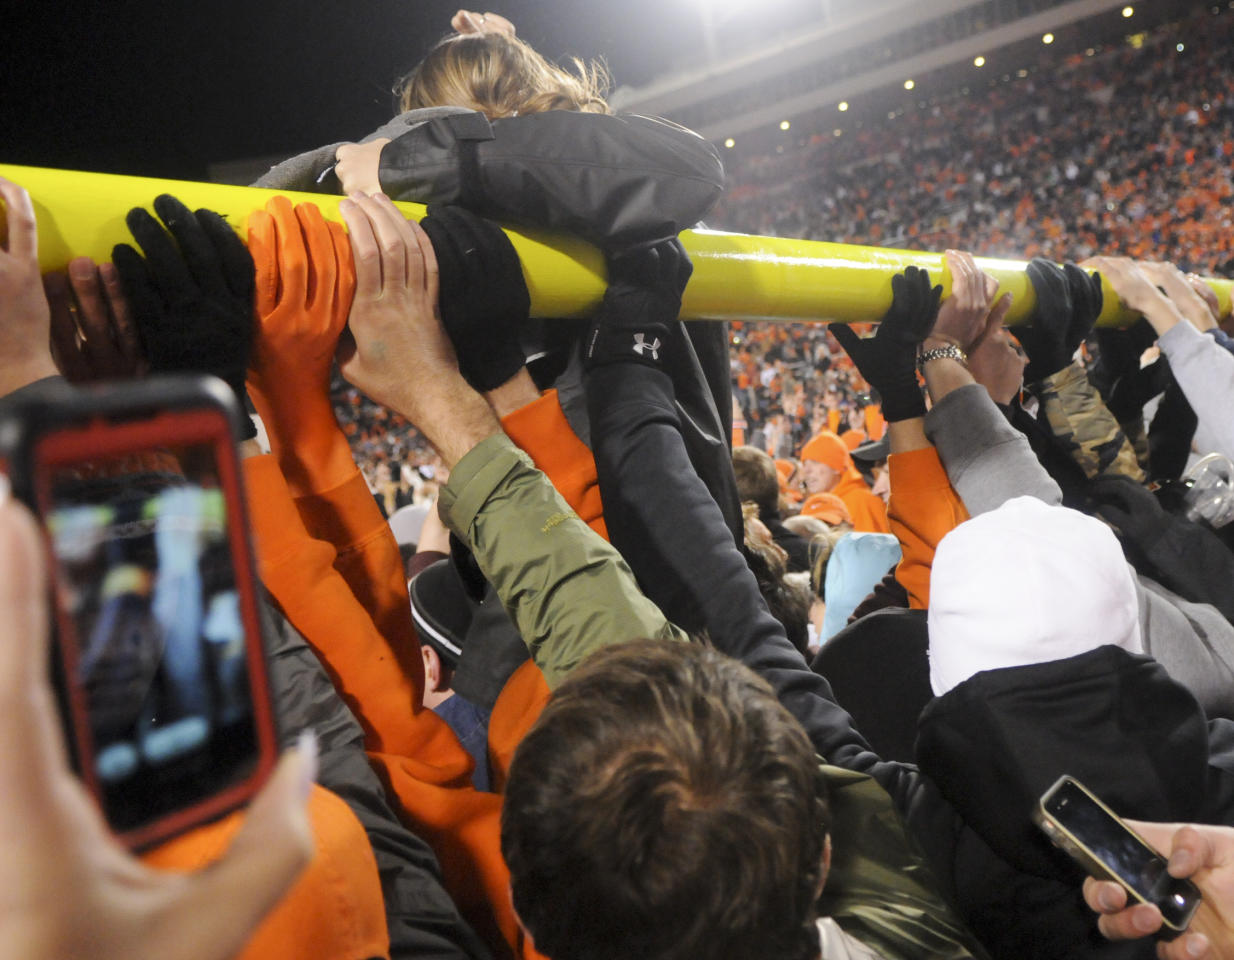 Oklahoma State fans carry a goal post they tore down following the Cowboy's 44-10 win of rival Oklahoma in an NCAA college football game in Stillwater, Okla., Saturday, Dec. 3, 2011. (AP Photo/Brody Schmidt)